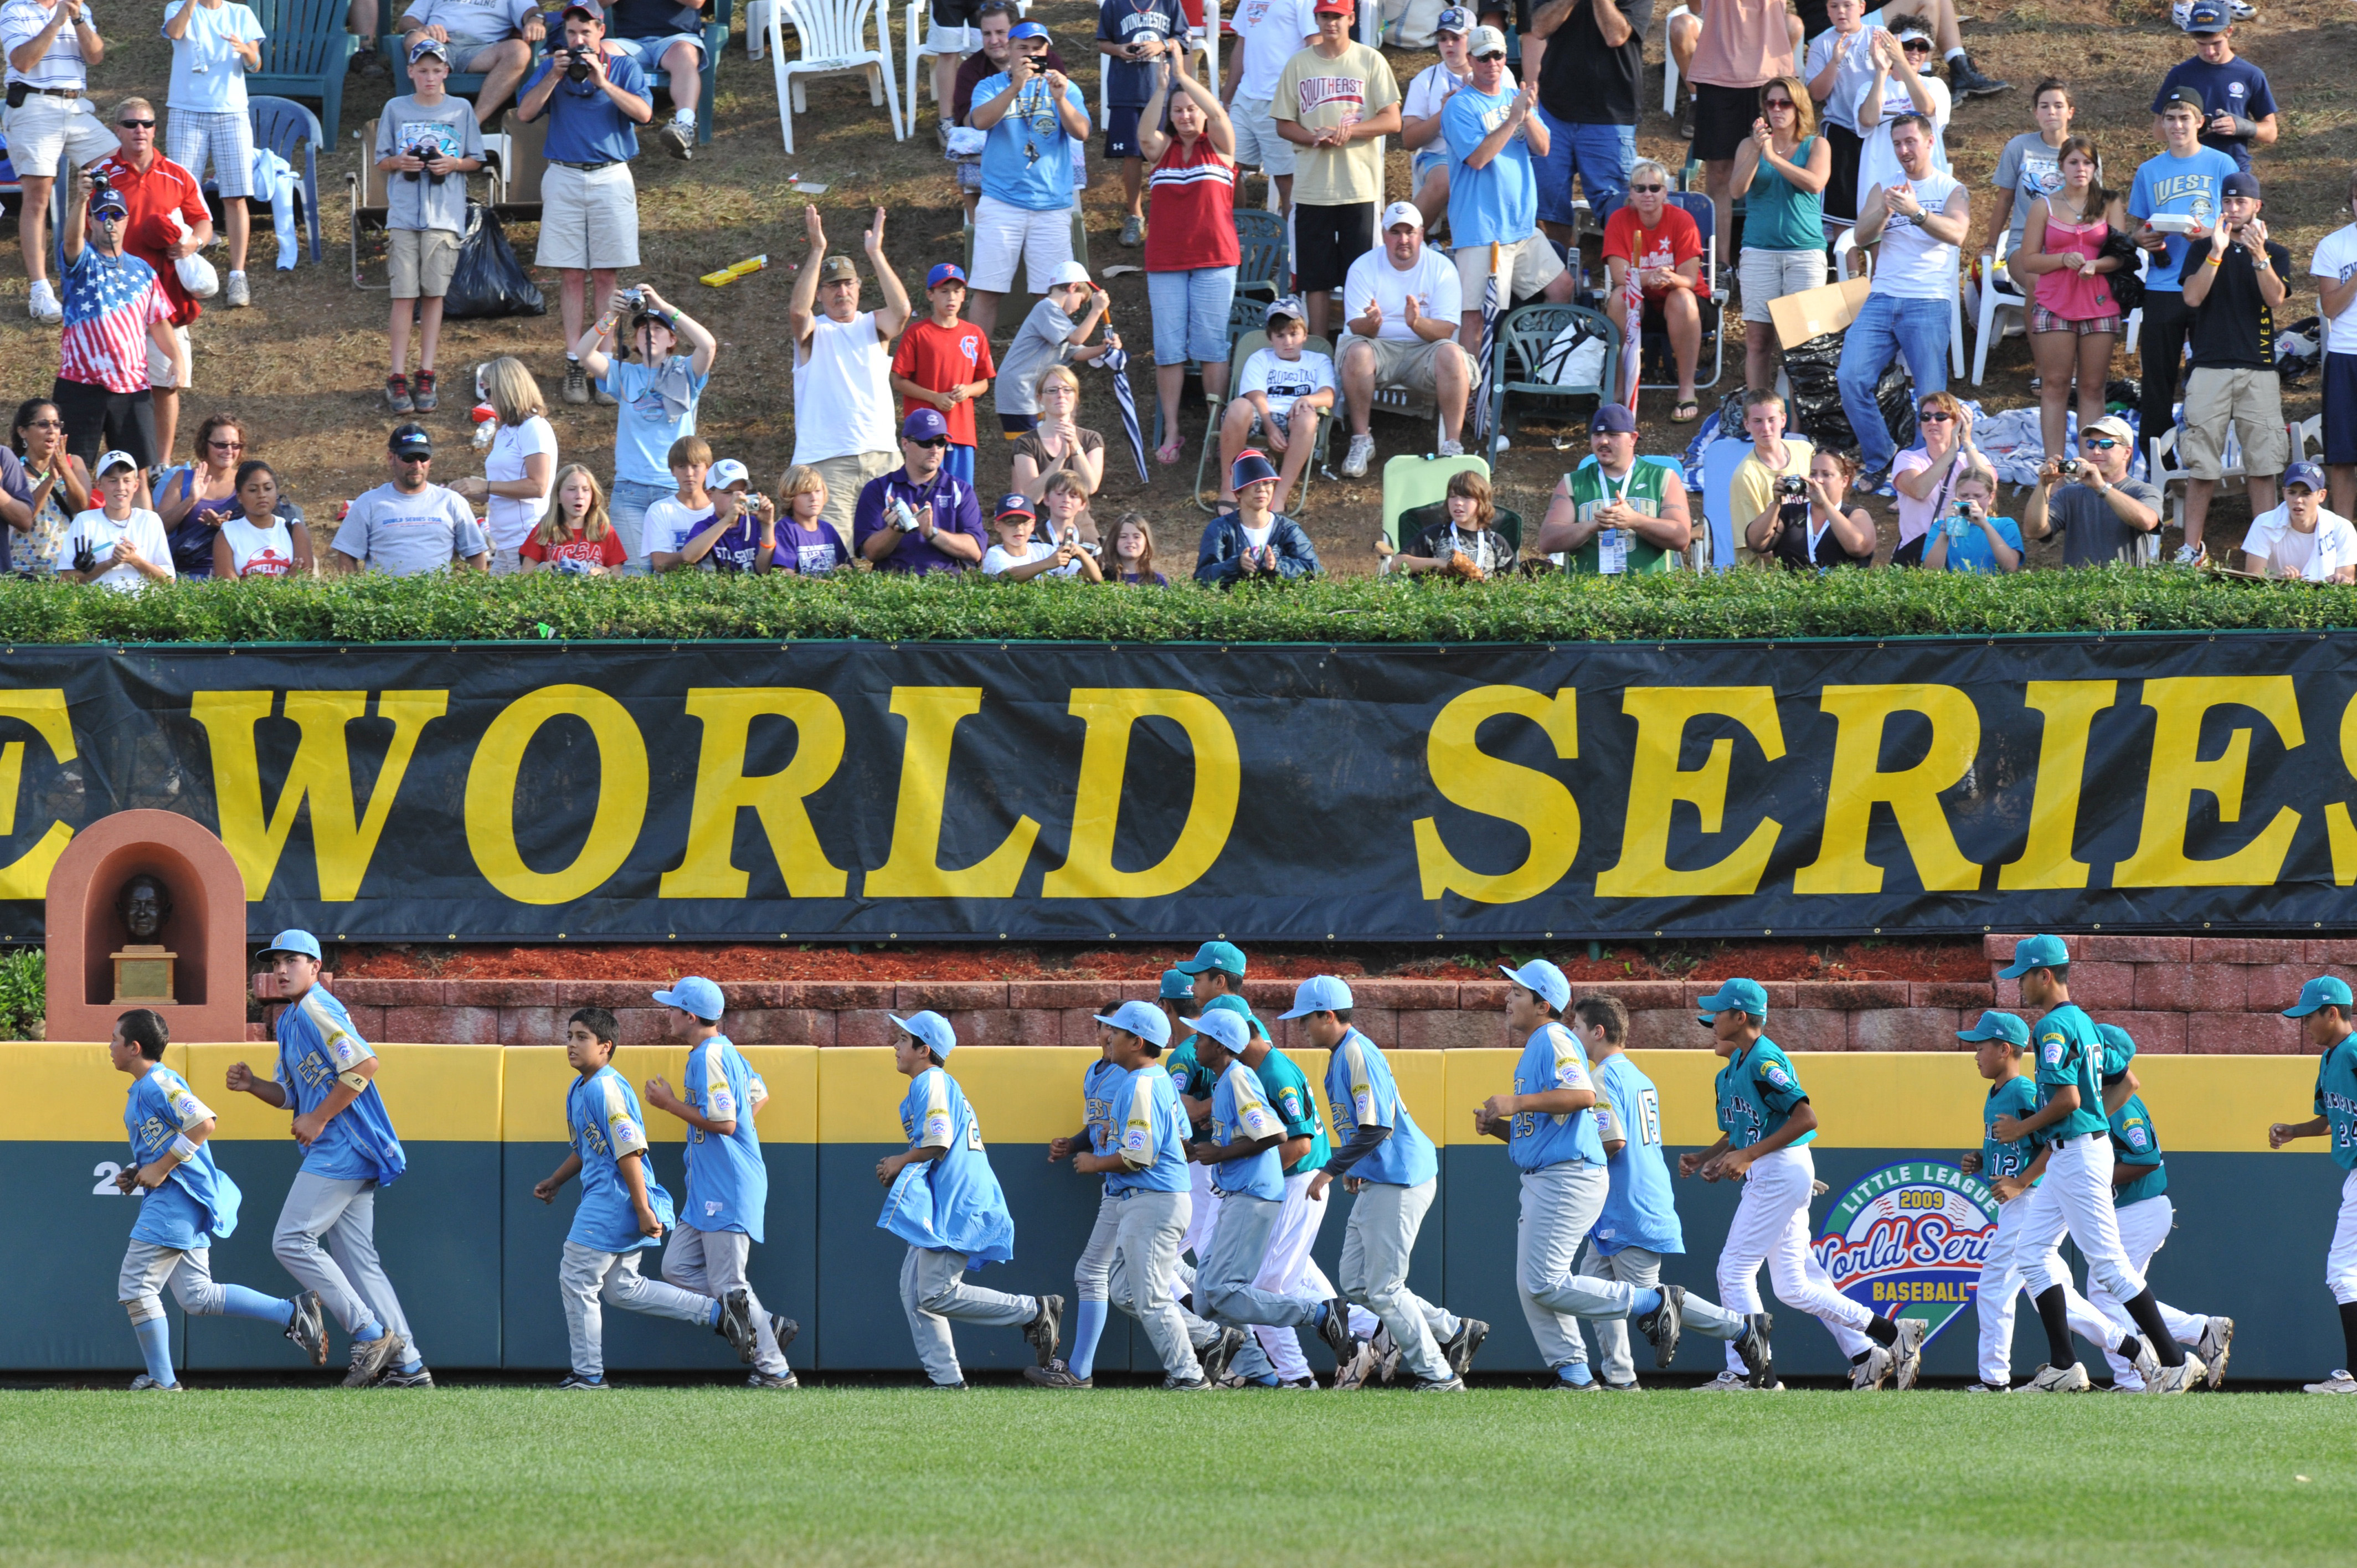 WILLIAMSPORT, PA - AUGUST 30: California (Chula Vista) celebrate their victory against Asia Pacific (Taoyuan, Taiwan) in the little league world series final at Lamade Stadium on August 30, 2009 in Williamsport, Pennsylvania. (Photo by Larry French/Getty